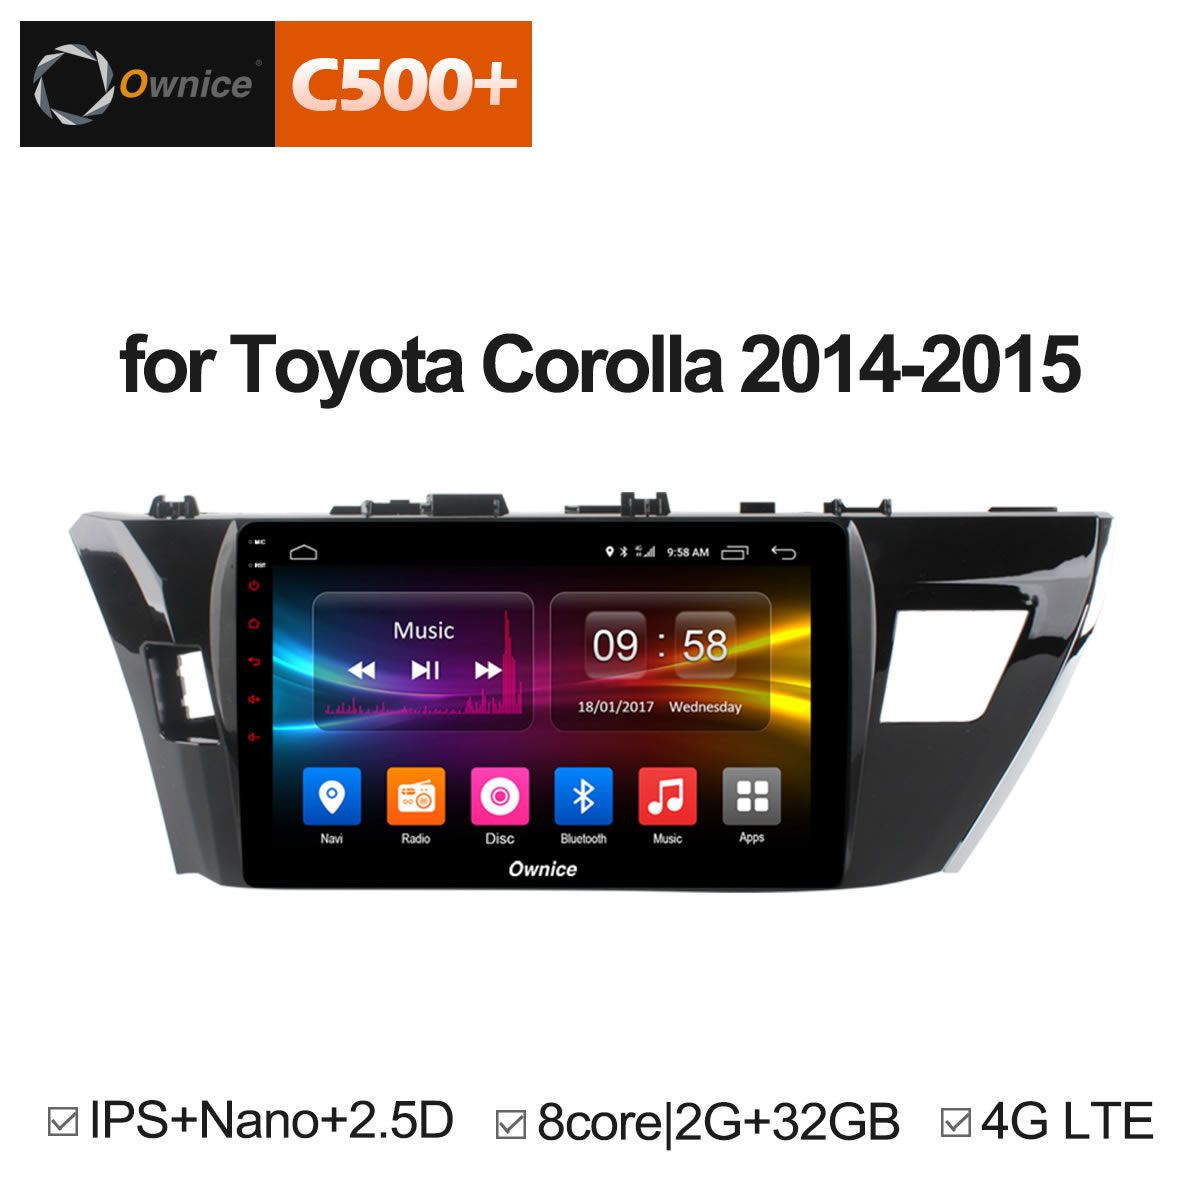 Ownice C500+ G10 Android 6.0 Octa Core Car Radio 2 din GPS 2GB RAM 32GB ROM For Toyota corolla 2014 2015 Levin 2013-2018 DVD 4G